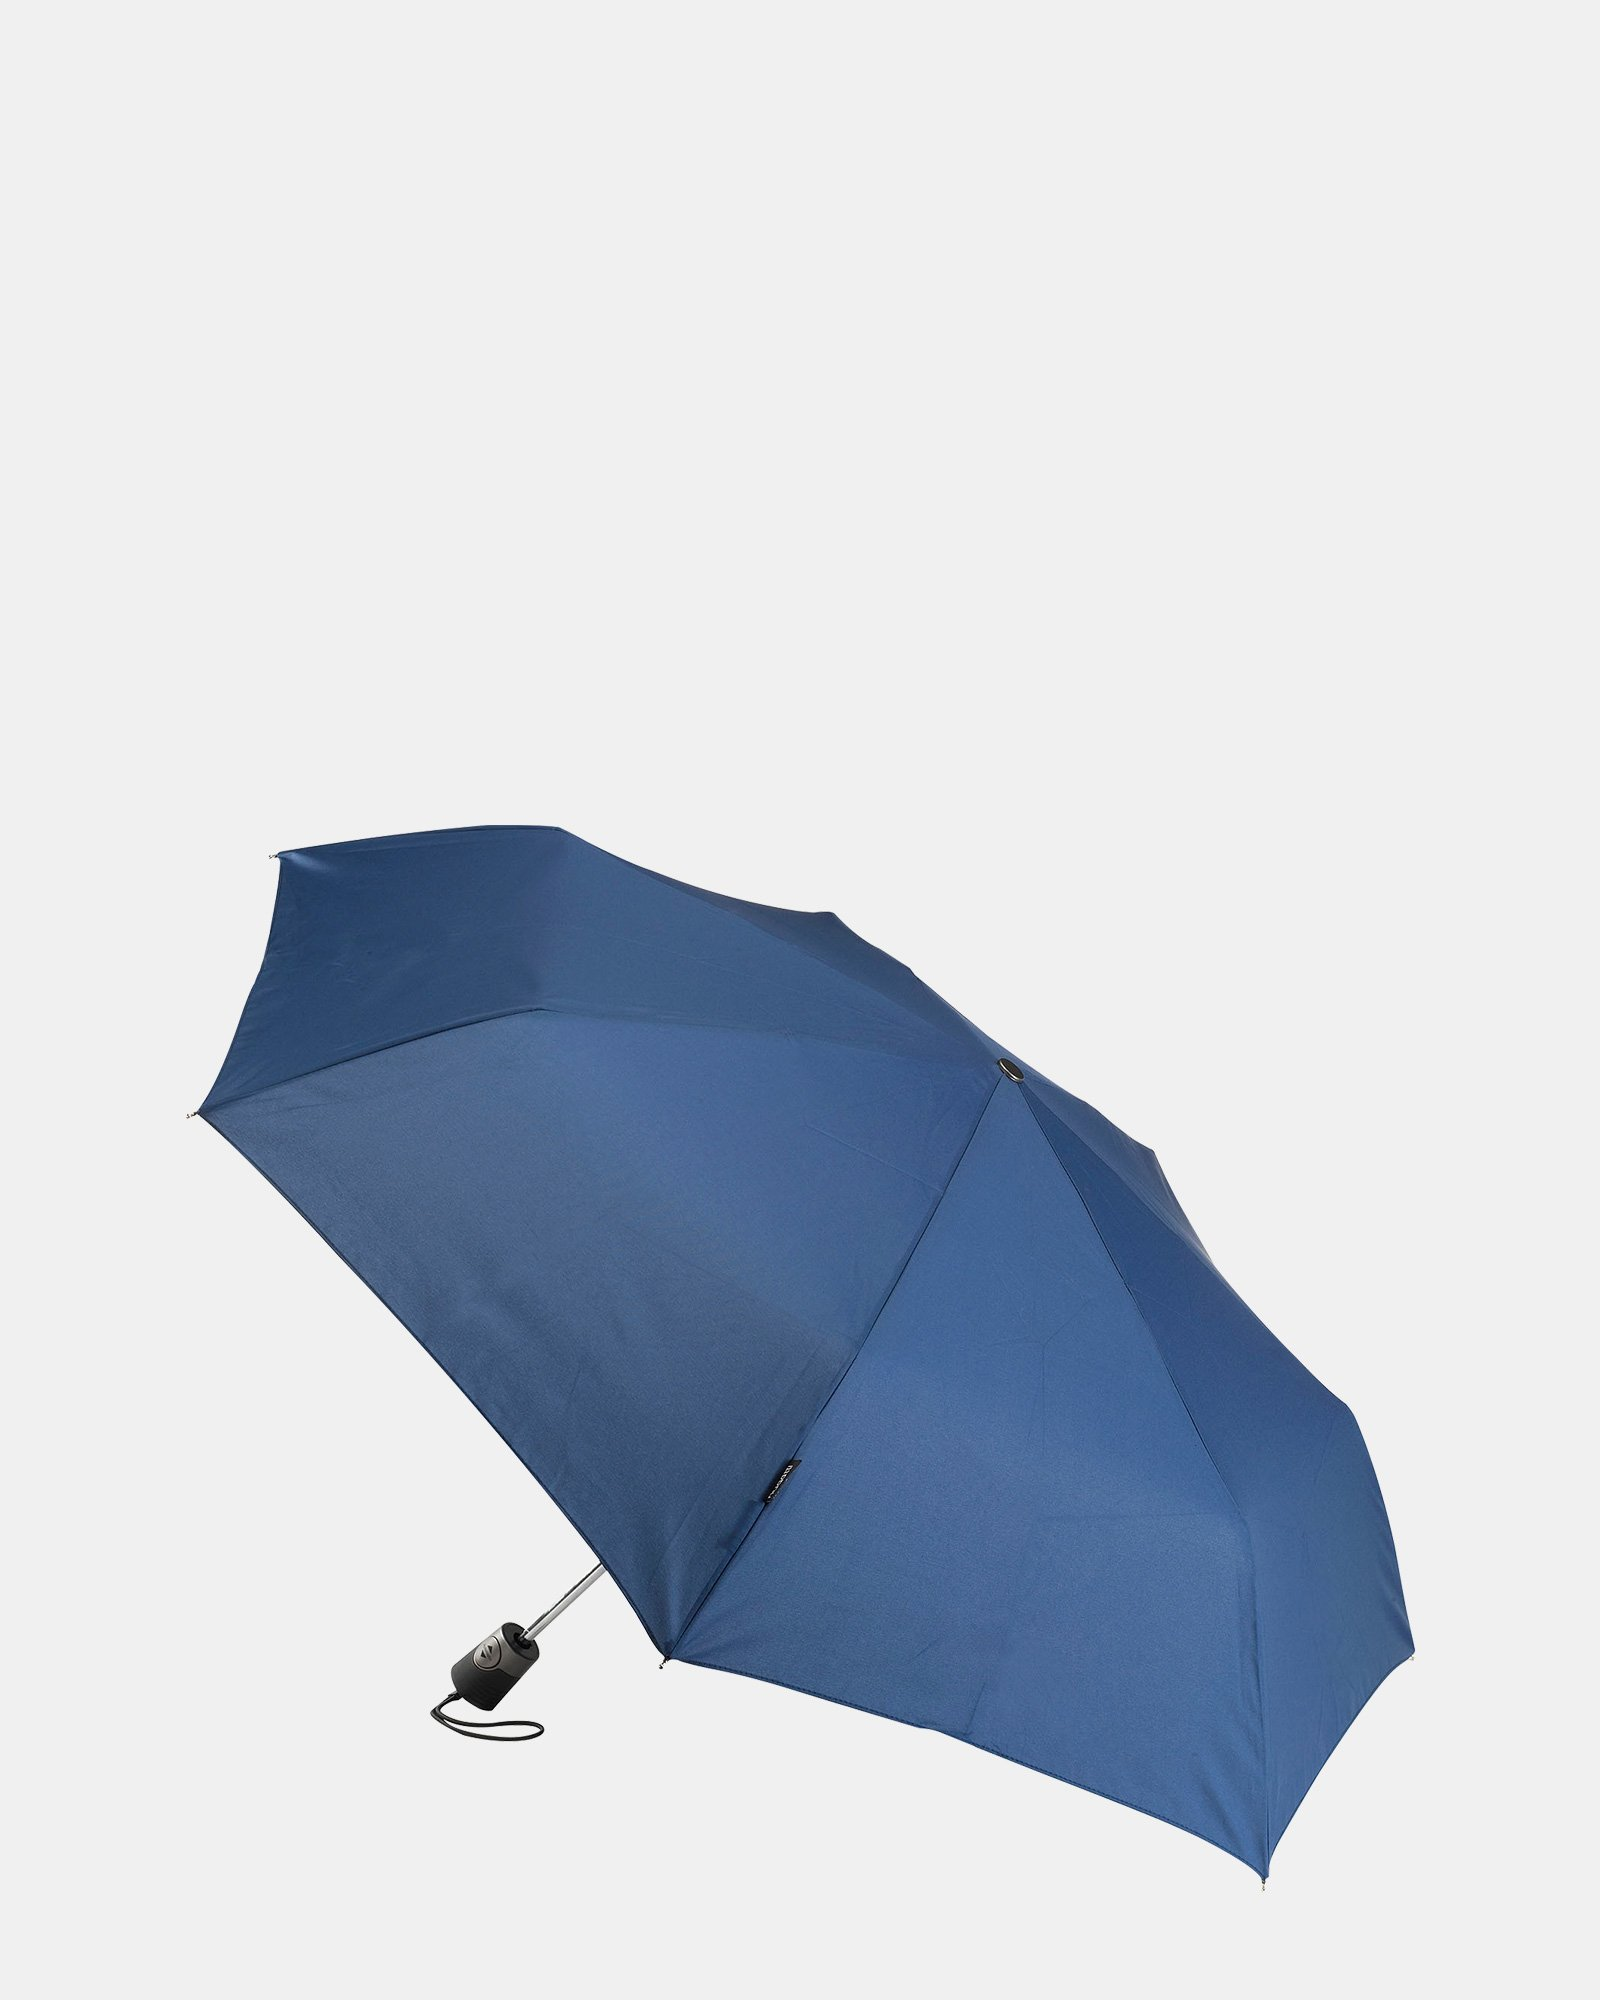 TAKE IT DUO - Umbrella with Automatic one-touch open & close mechanism - navy - Bugatti - Zoom